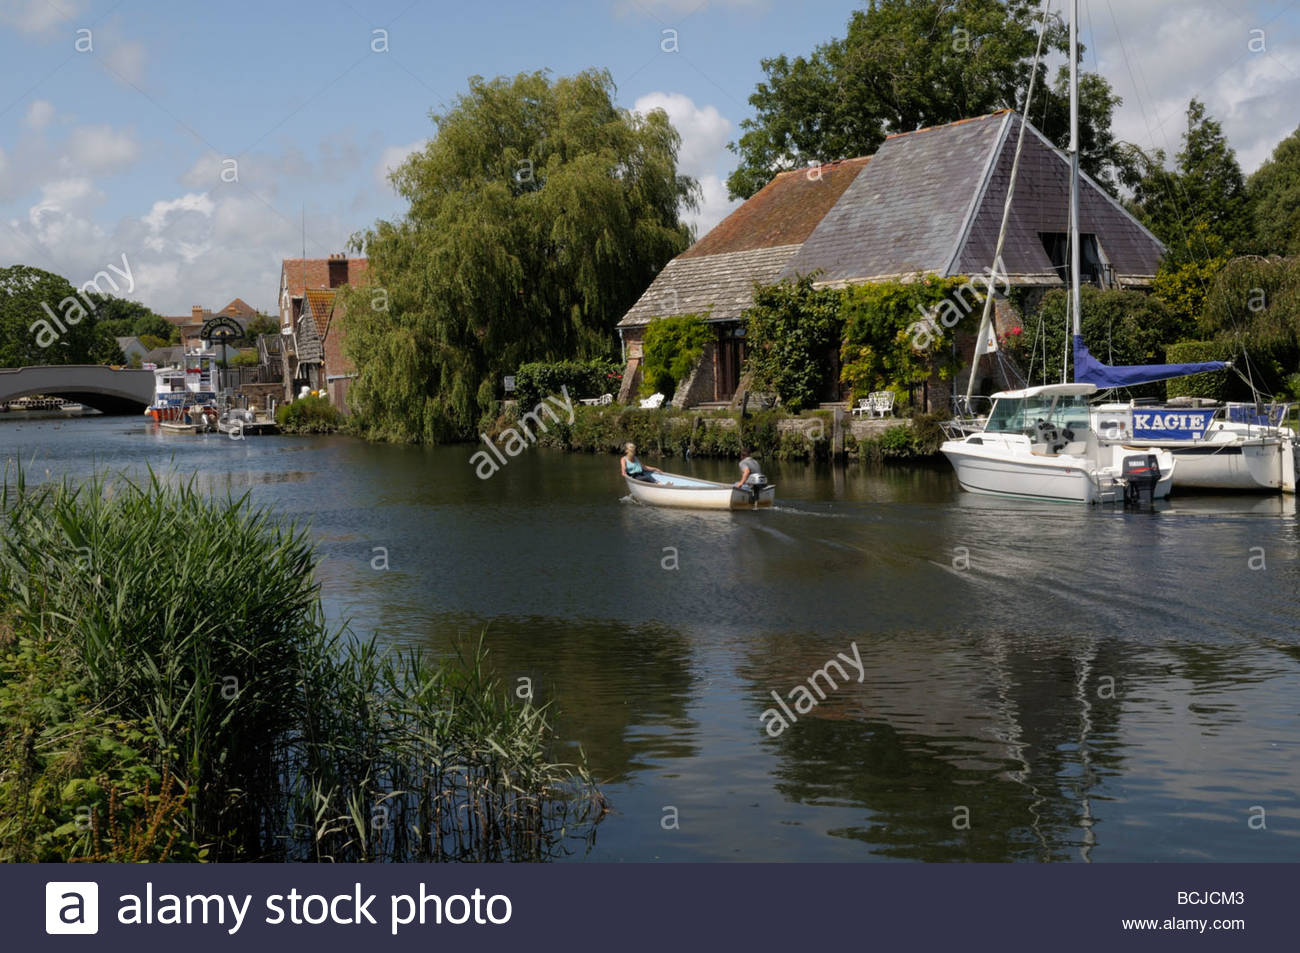 Lazy Days on the River Frome, Wareham, Dorset, England, UK - Stock Image